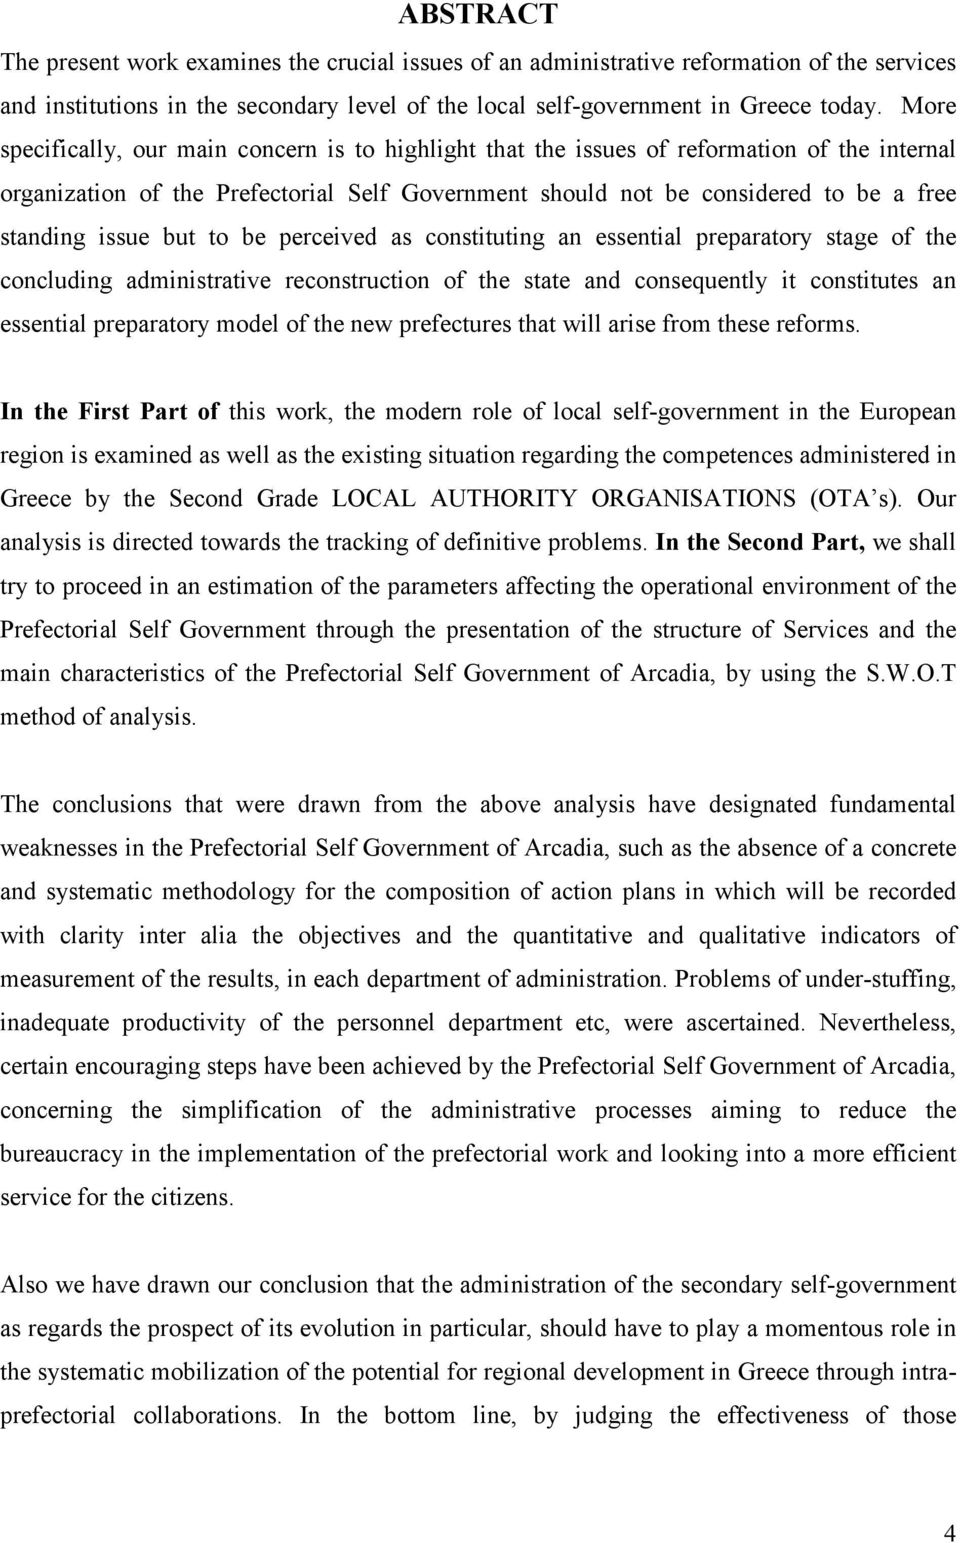 issue but to be perceived as constituting an essential preparatory stage of the concluding administrative reconstruction of the state and consequently it constitutes an essential preparatory model of